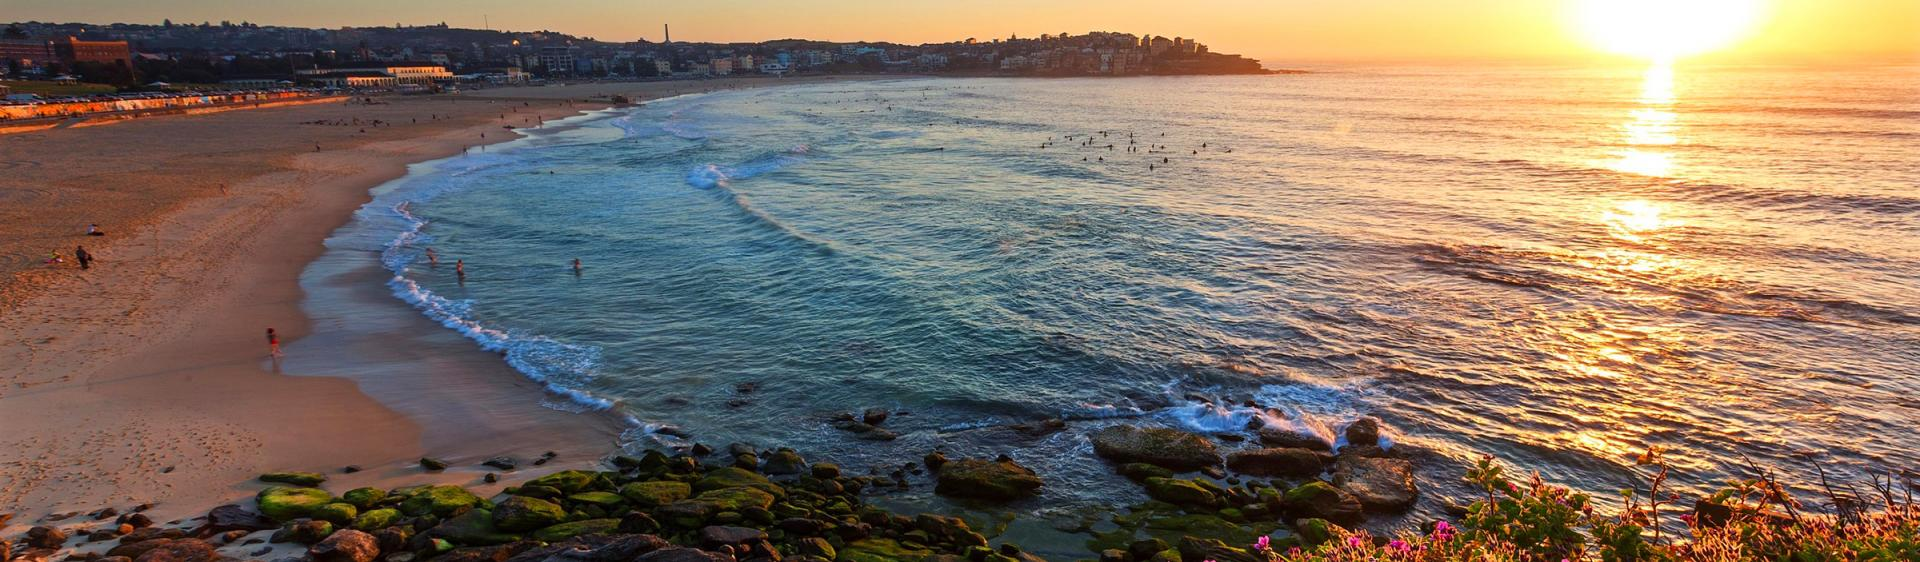 Early Morning Bondi Beach